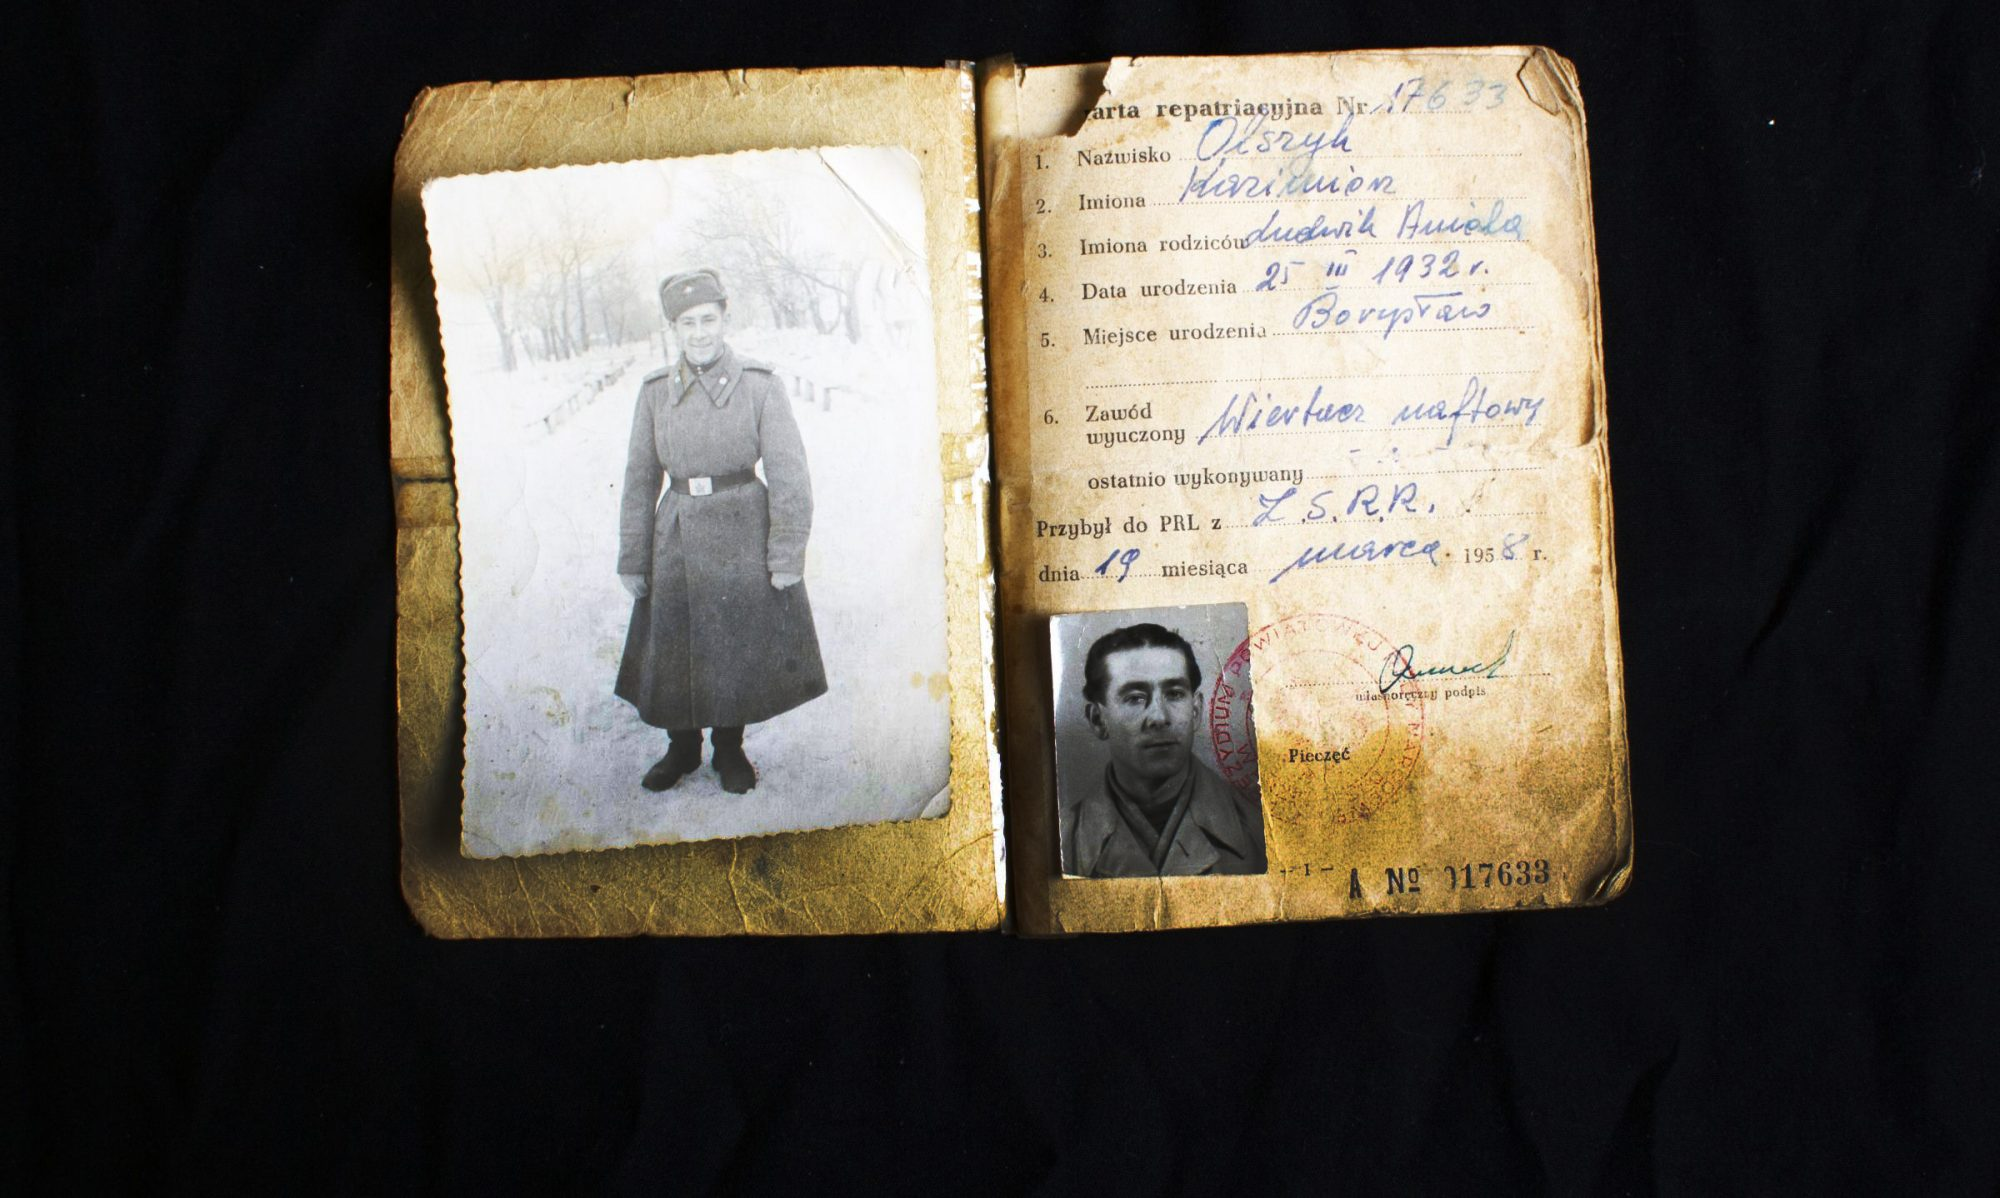 An old passport